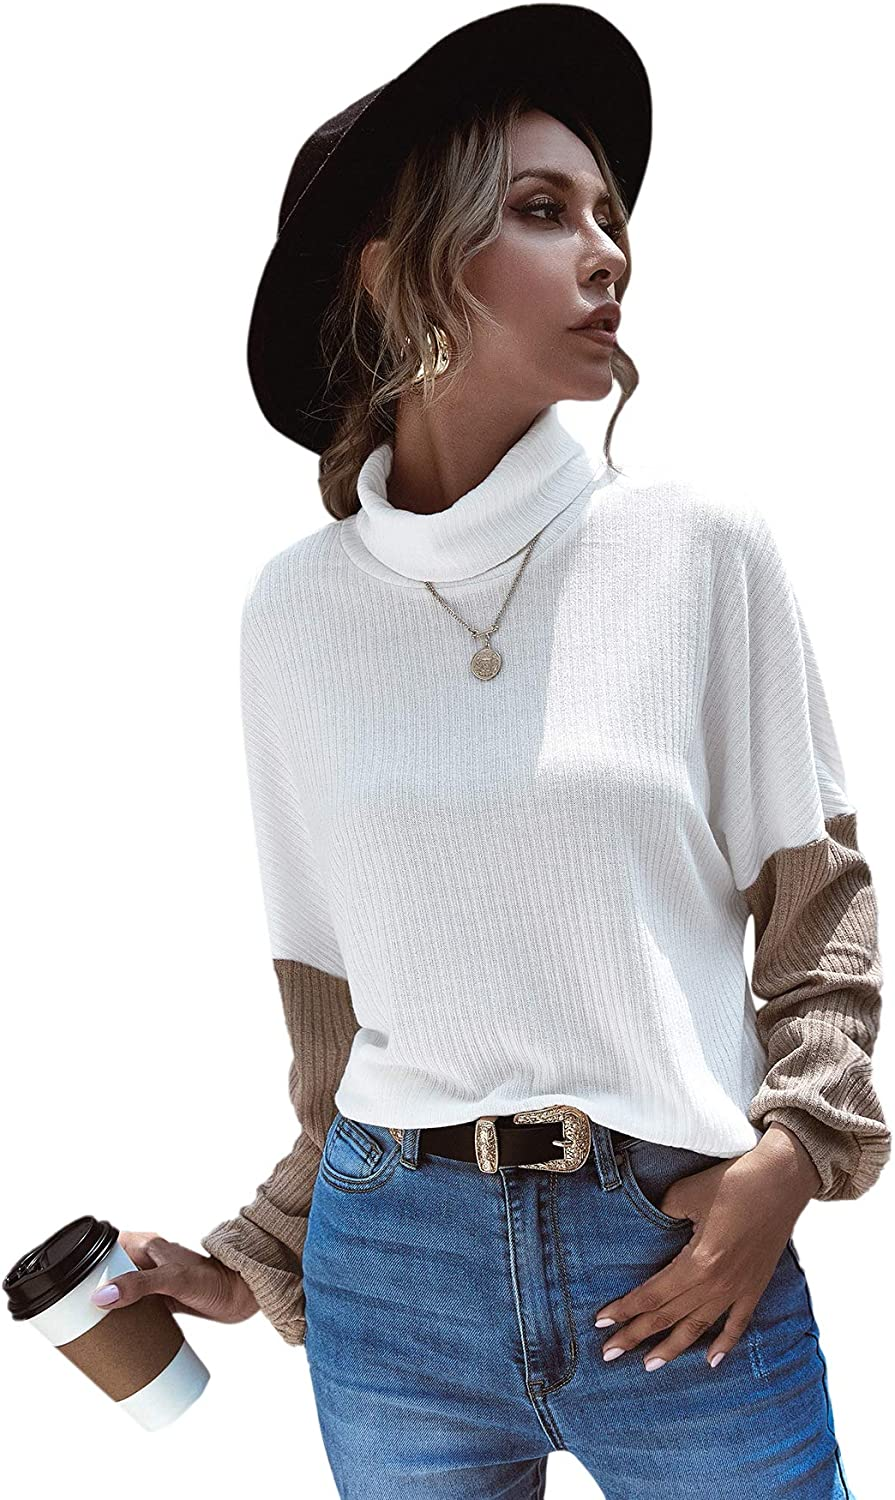 Floerns Women's Casual Long Sleeve Turtleneck Color Block Knit Loose Pullover Tops